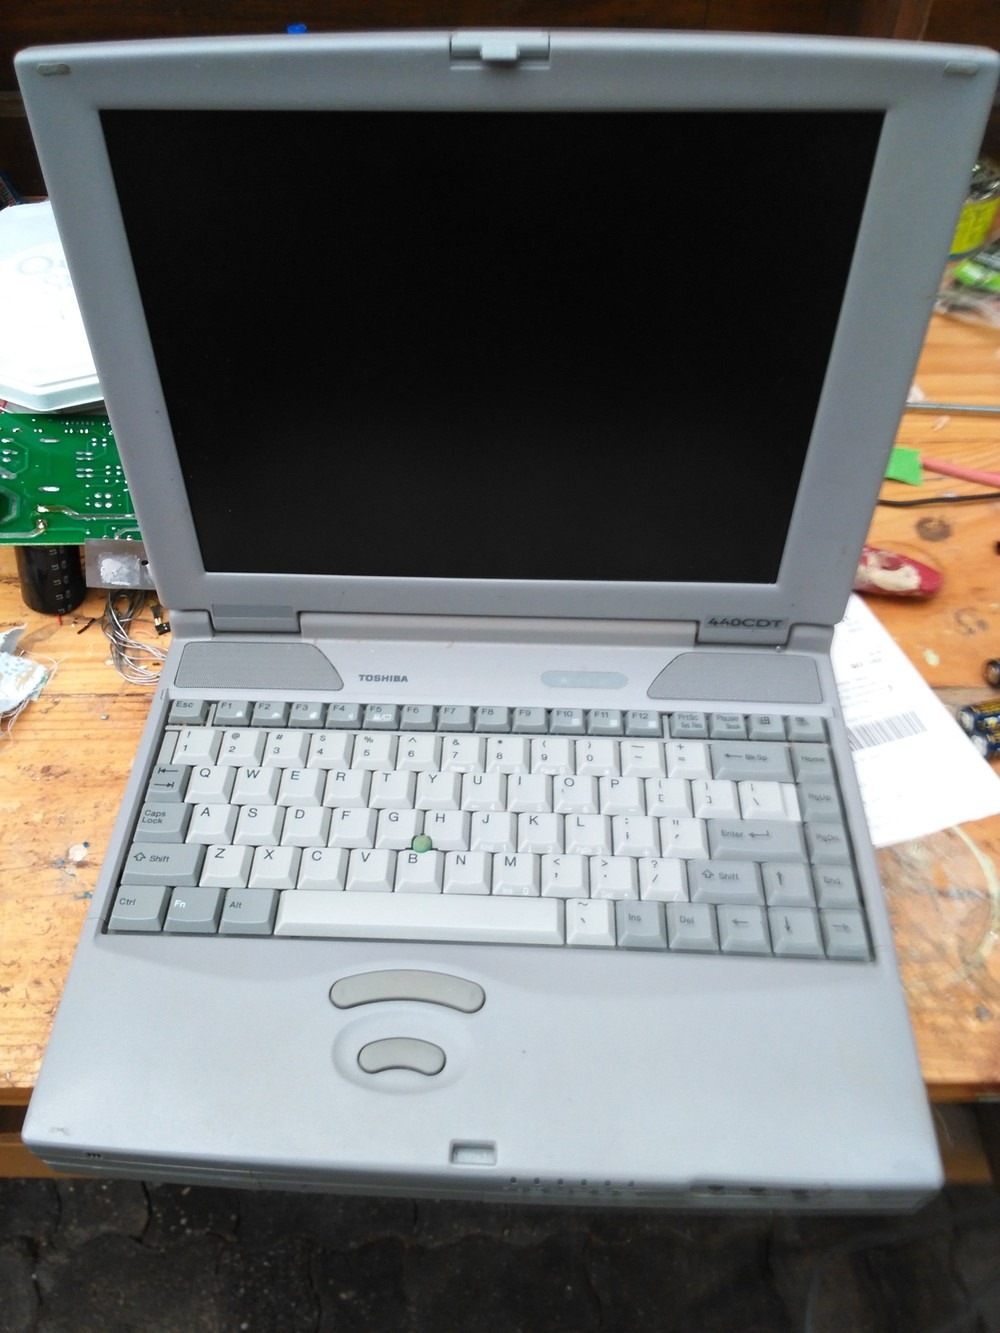 A Toshiba Satellite 440CDT. Scored for the princely sum of $10.